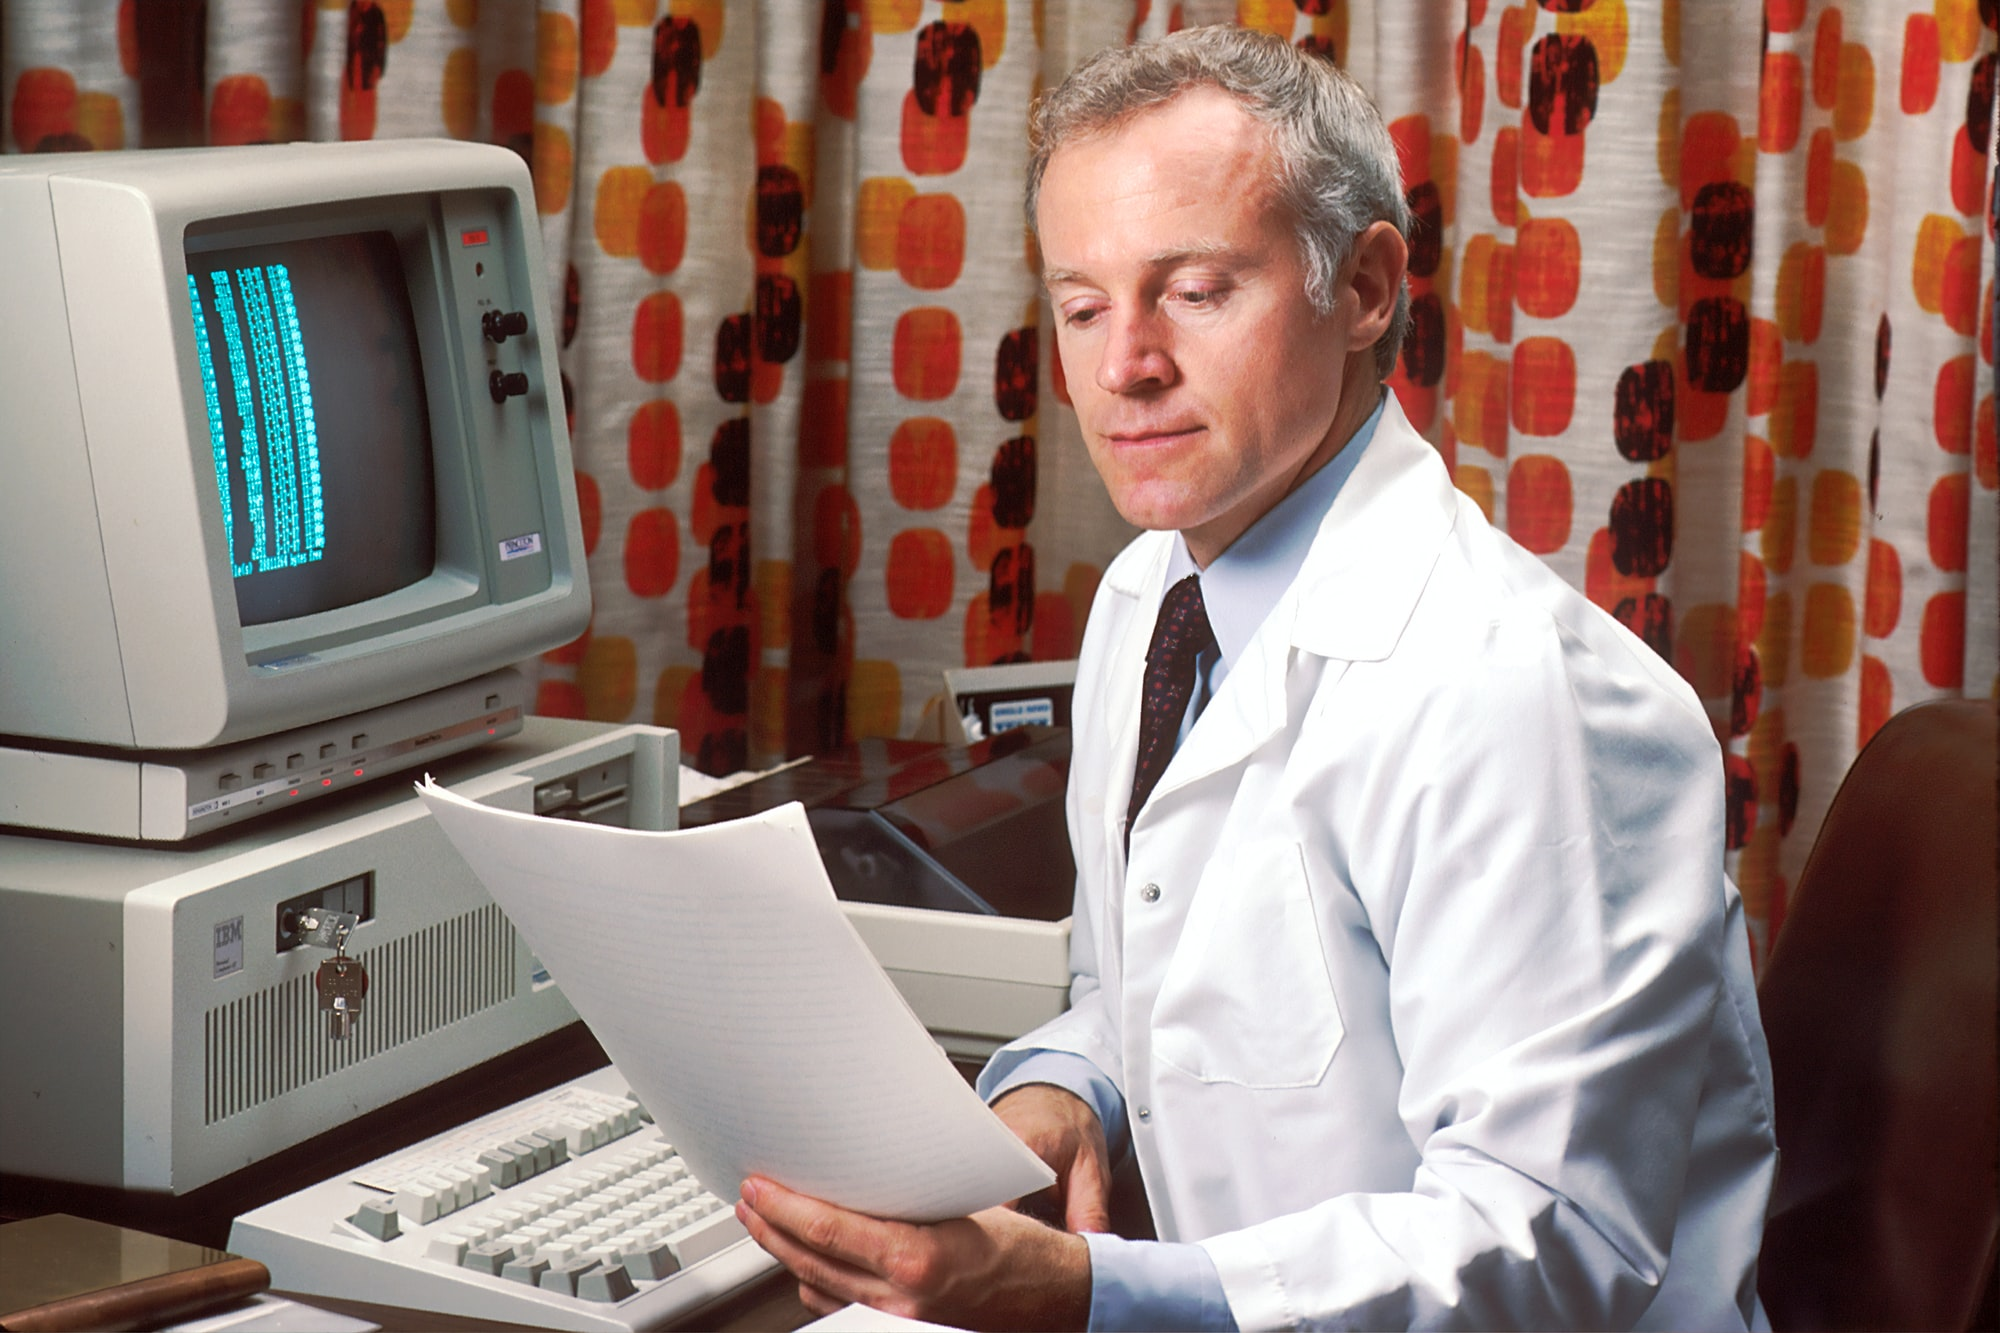 Doctor sitting at his office desk accessing PDQ on his computer in the 1980s. The Physicians Data Query was designed by the National Cancer Institute to help physicians obtain information about the most up-to-date protocols, physicians, and clinics treating cancer patients. 1987